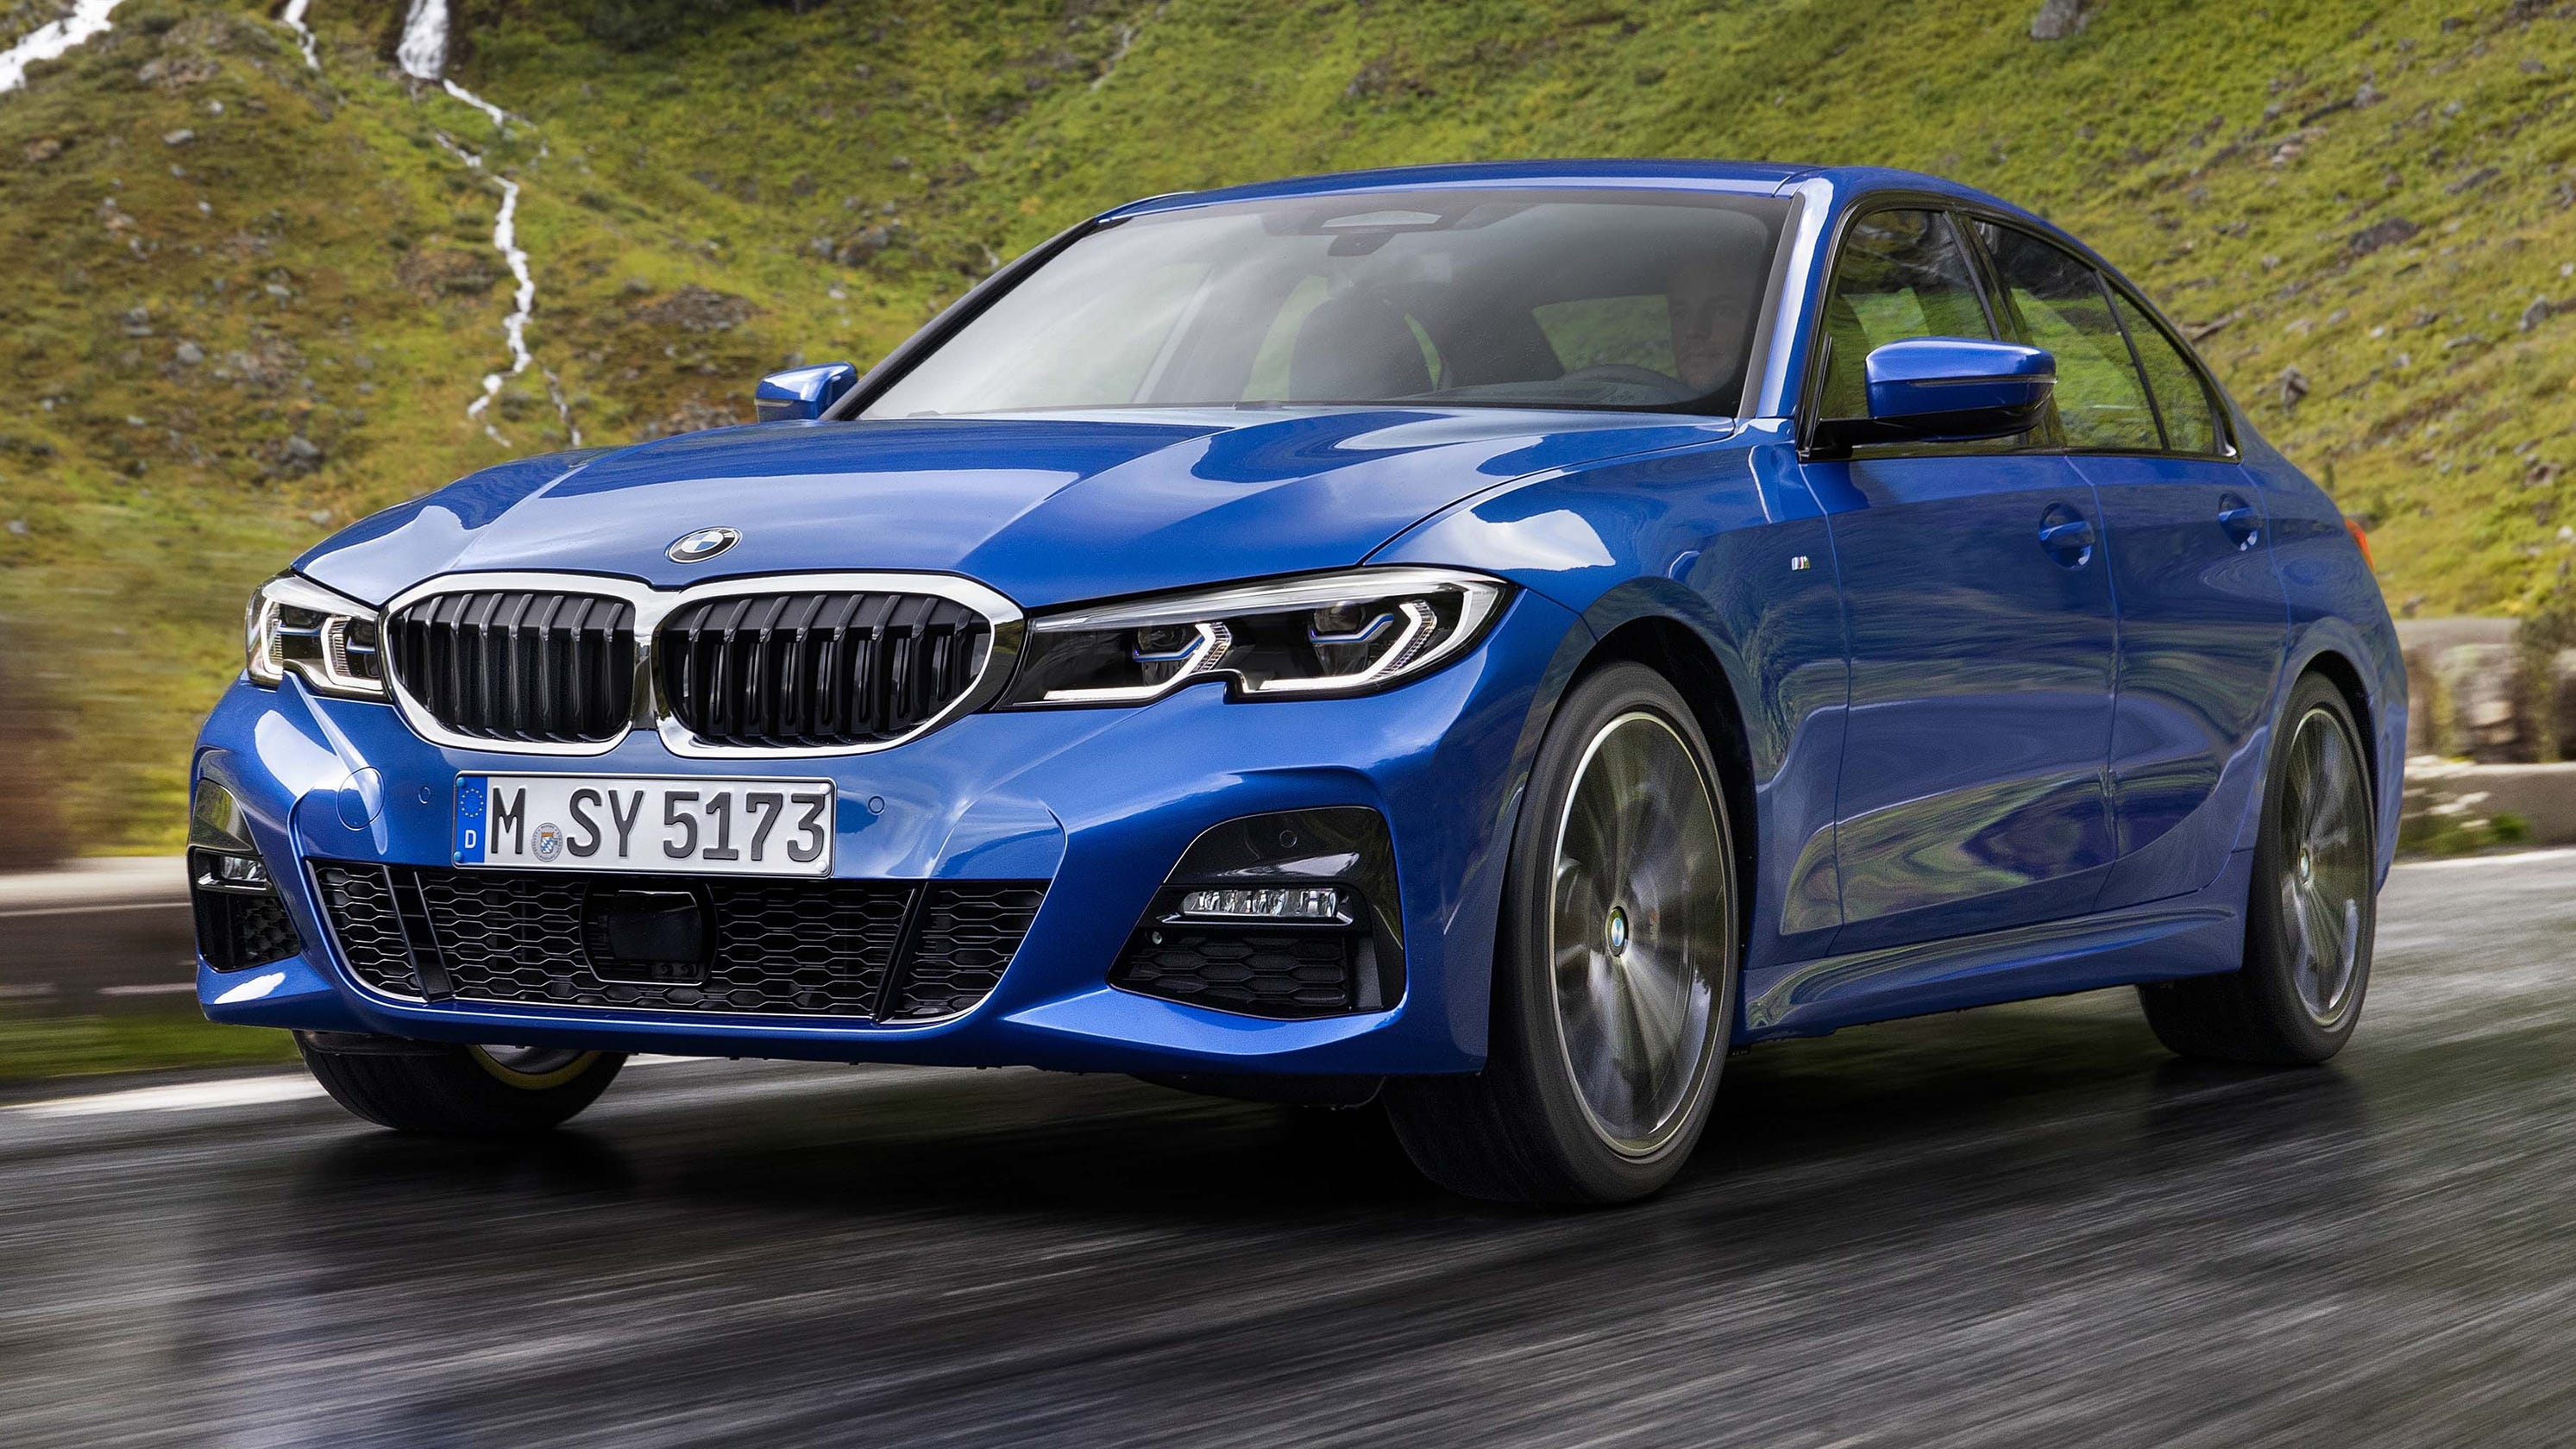 Long live sedans: Key BMW 3-series and Acura ILX debut